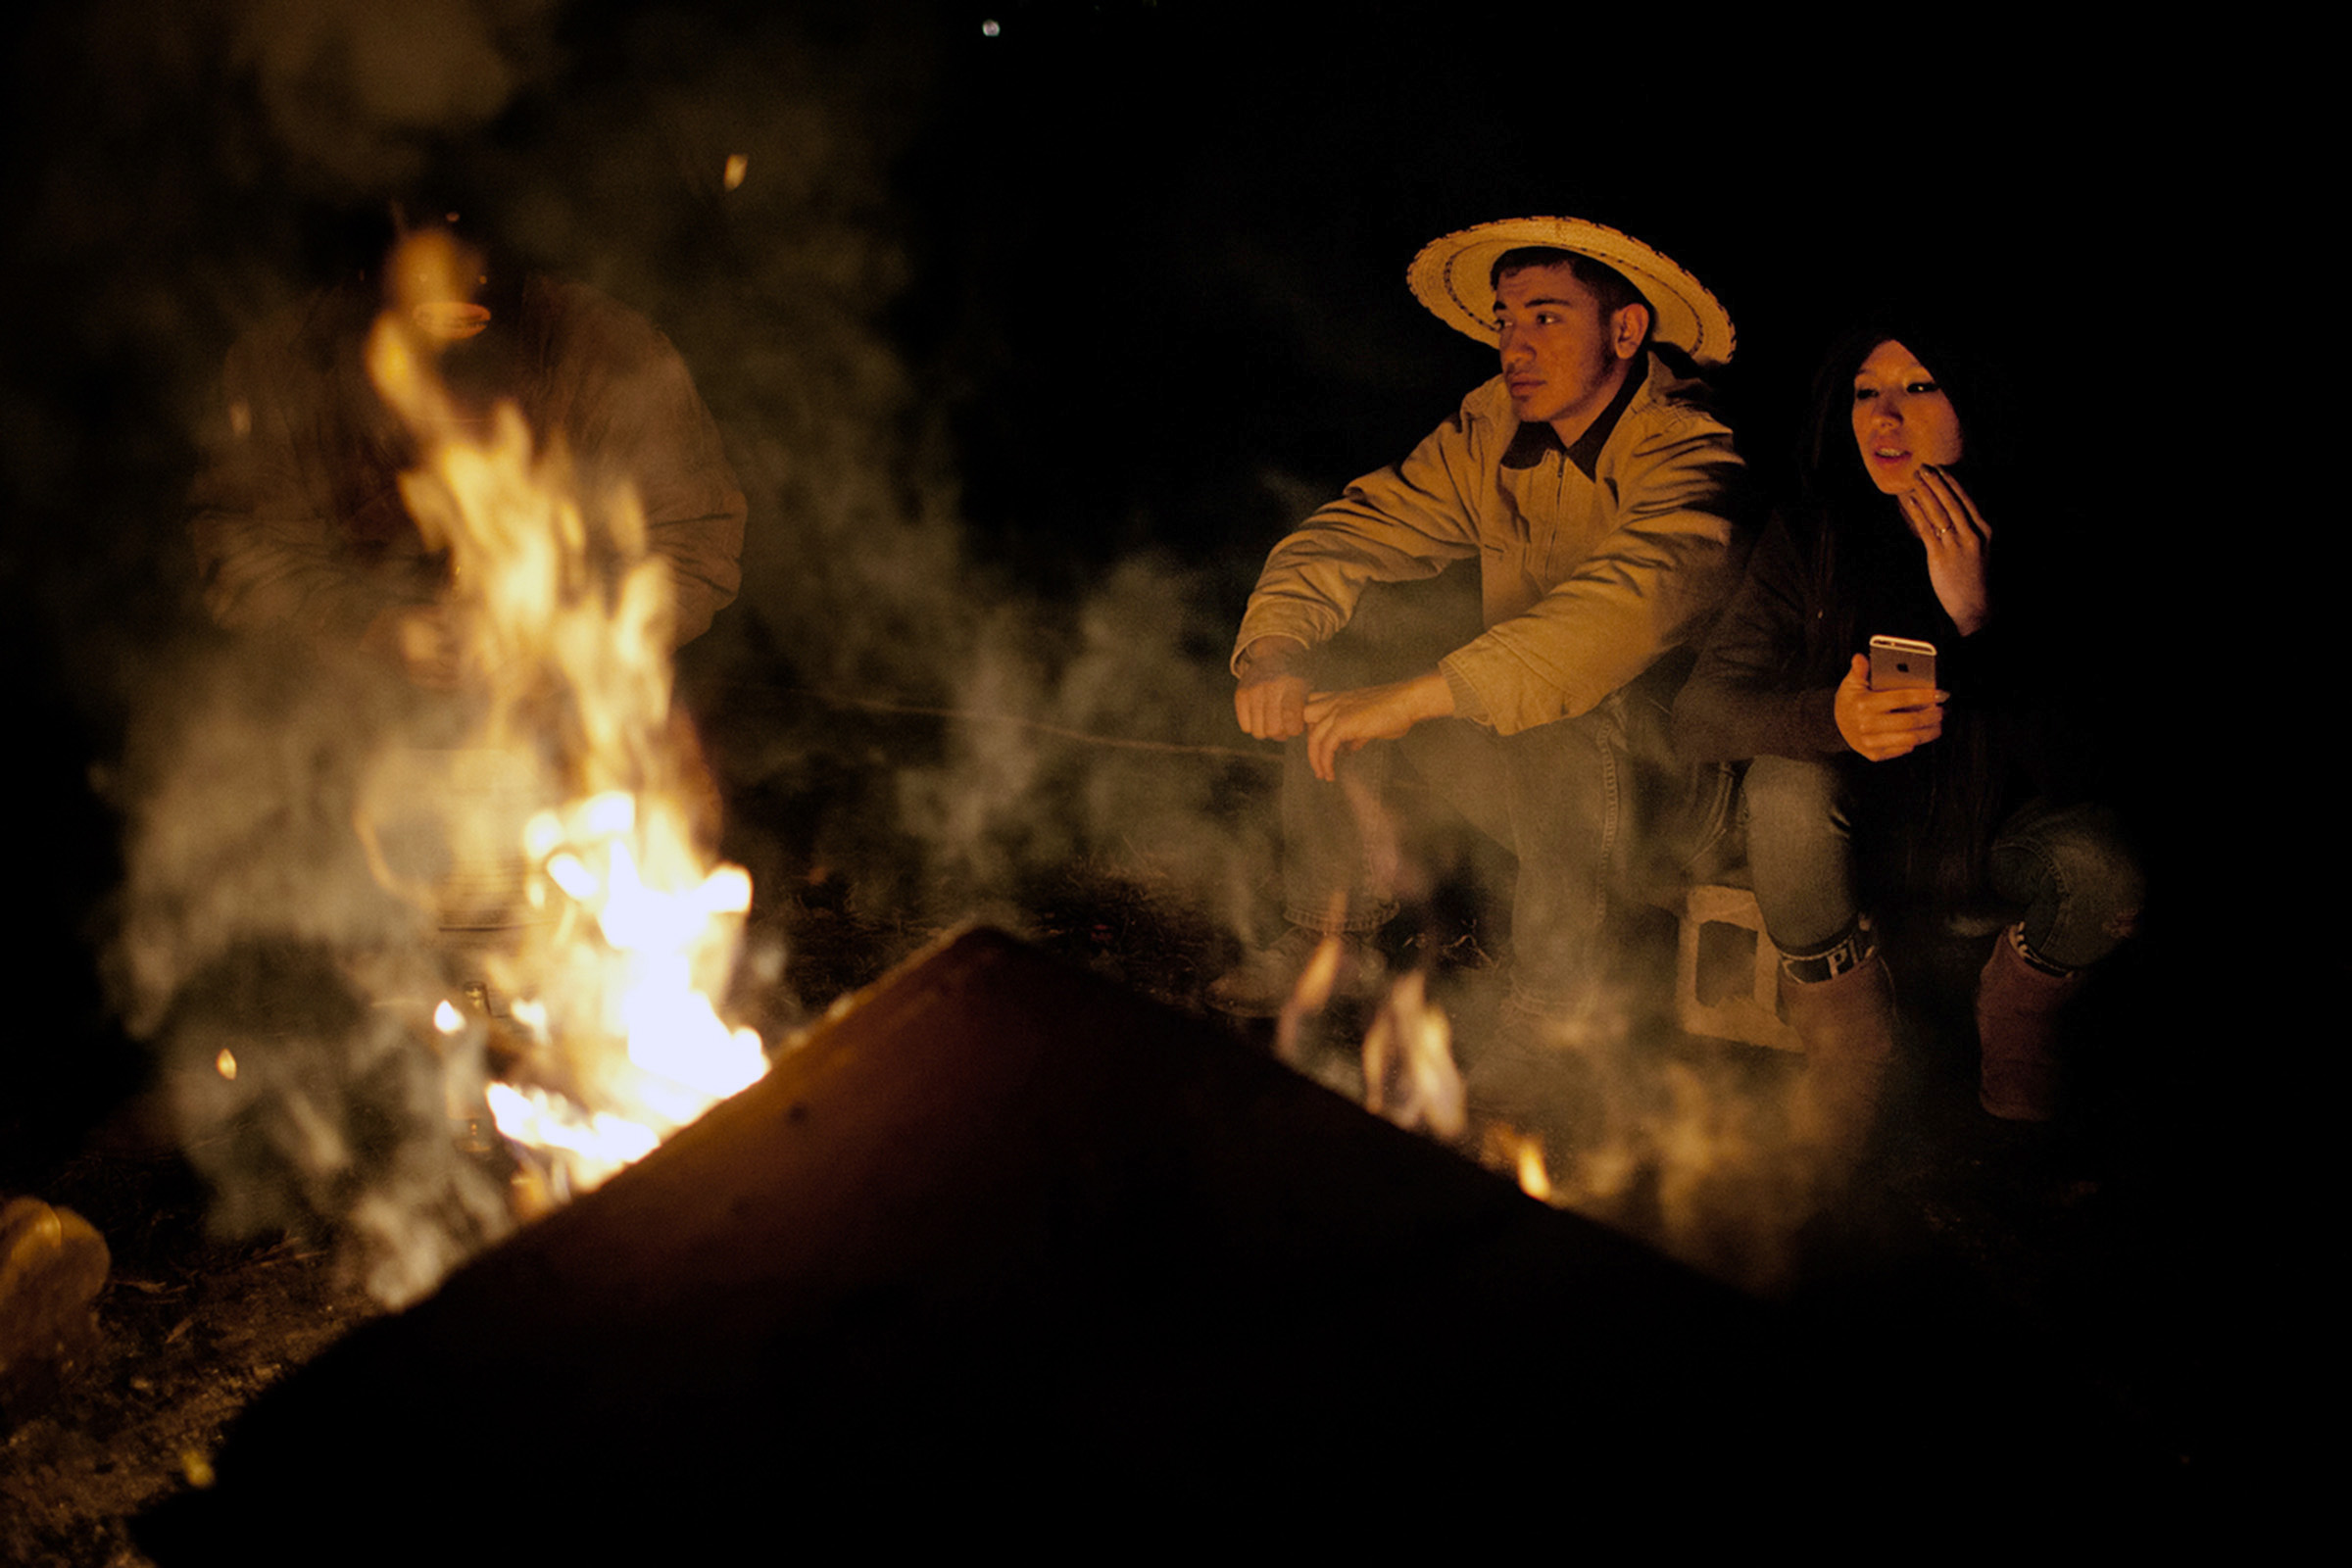 Marcos Espinoza, 17, enjoys a quiet Saturday night in front of the bonfire with his friend, Hector Garduno (left) and his cousin, Elisa Yamileth, 15, on the family ranch in Bowling Green, Kentucky. Espinoza wanted to live on the ranch so that he could be closer to the family. (Photo by Betina Garcia/GroundTruth)